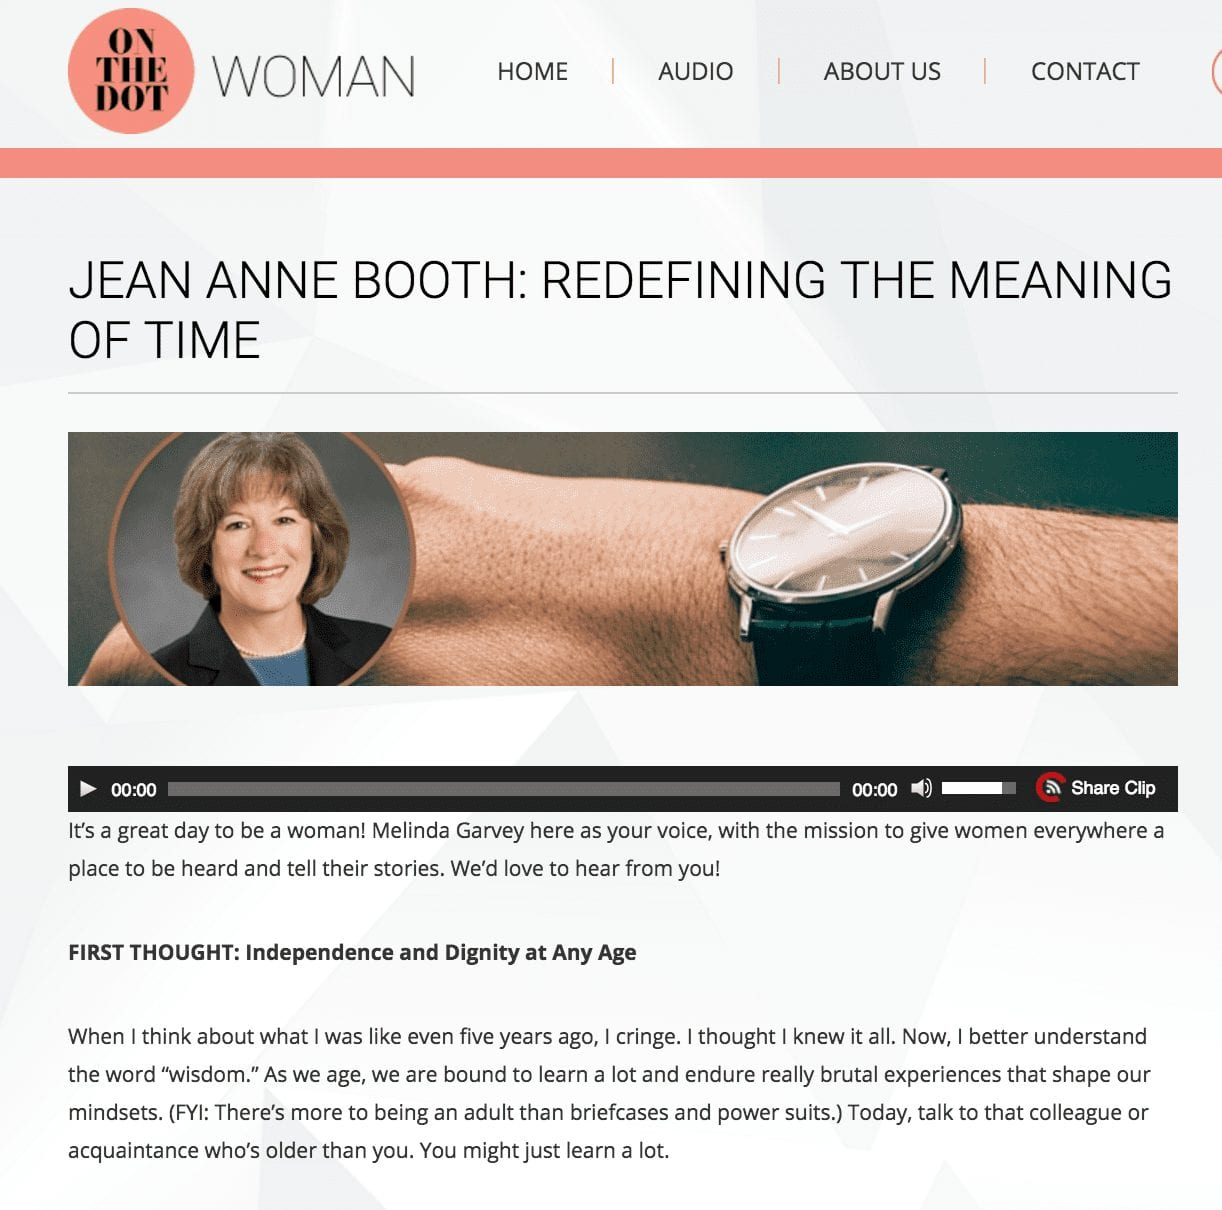 JEAN ANNE BOOTH: REDEFINING THE MEANING OF TIME